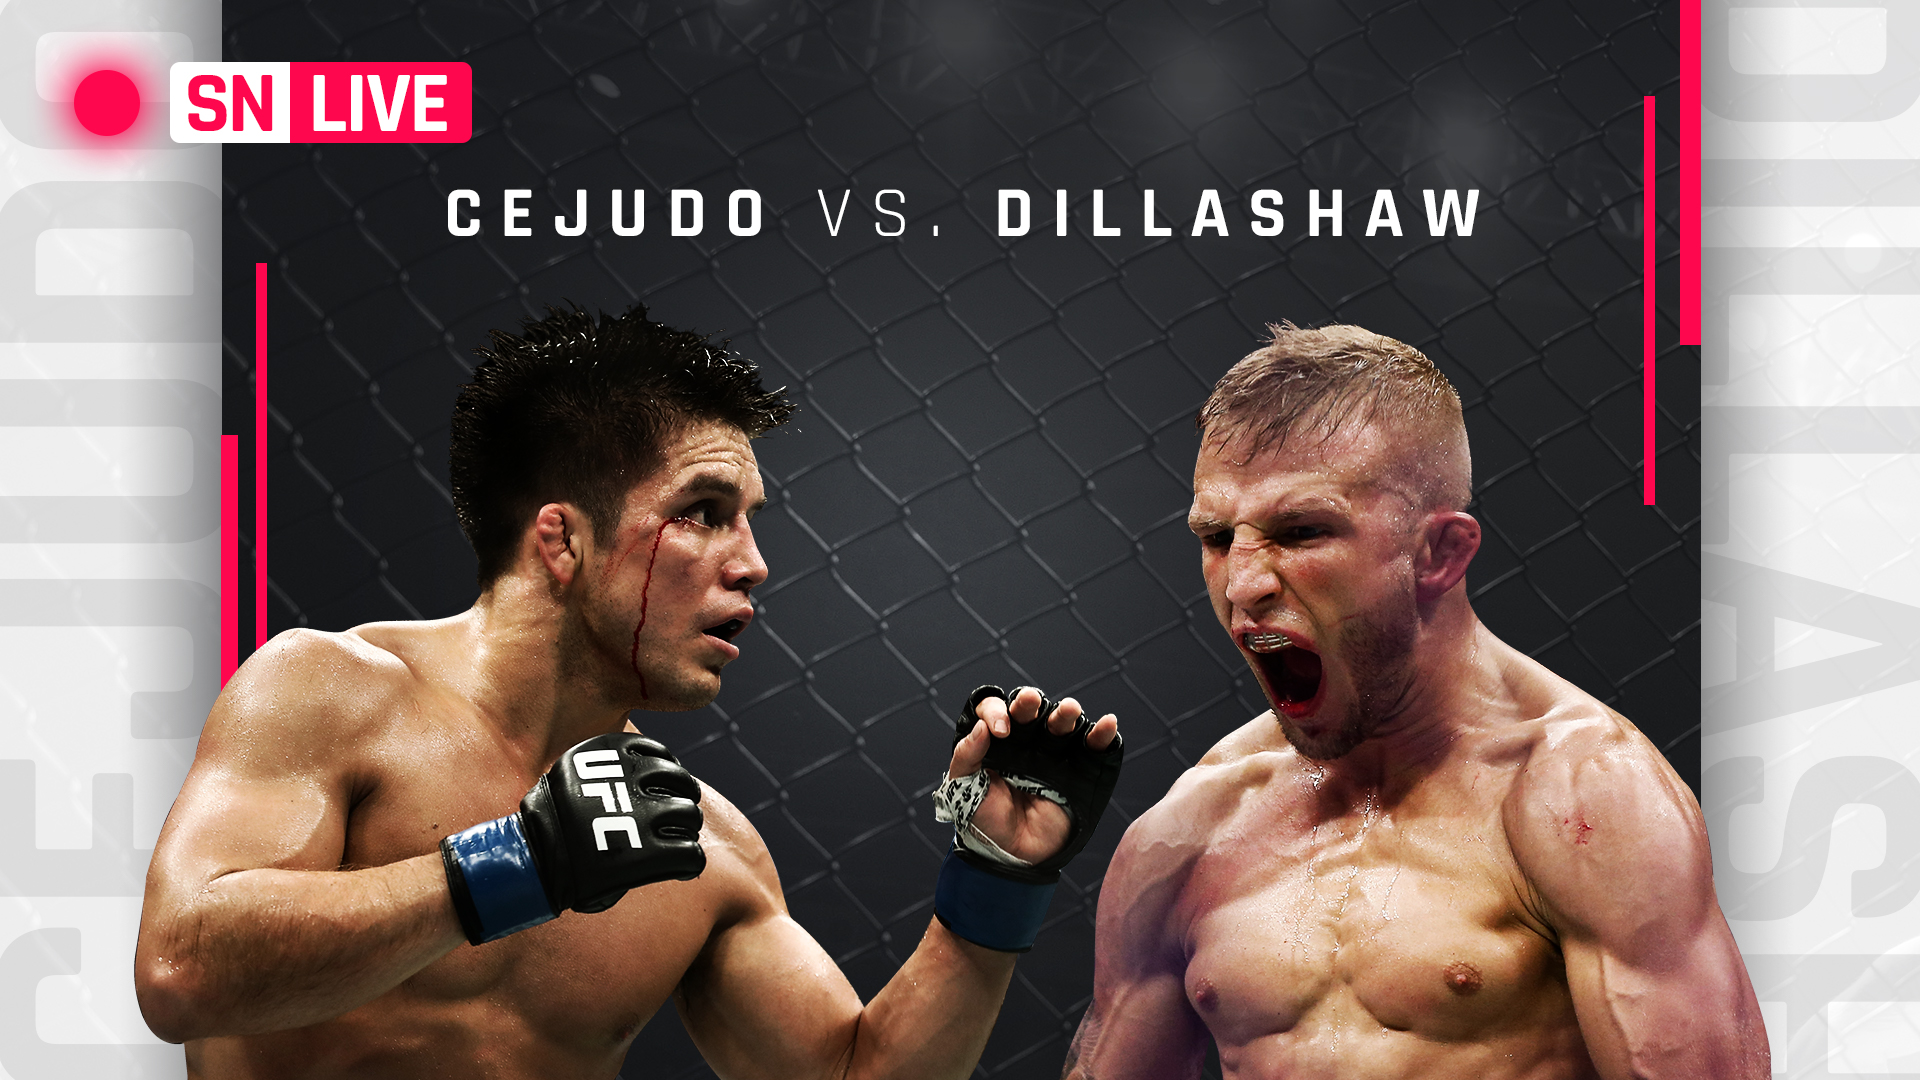 Cejudo TKOs Dillashaw in 32 seconds to retain flyweight belt